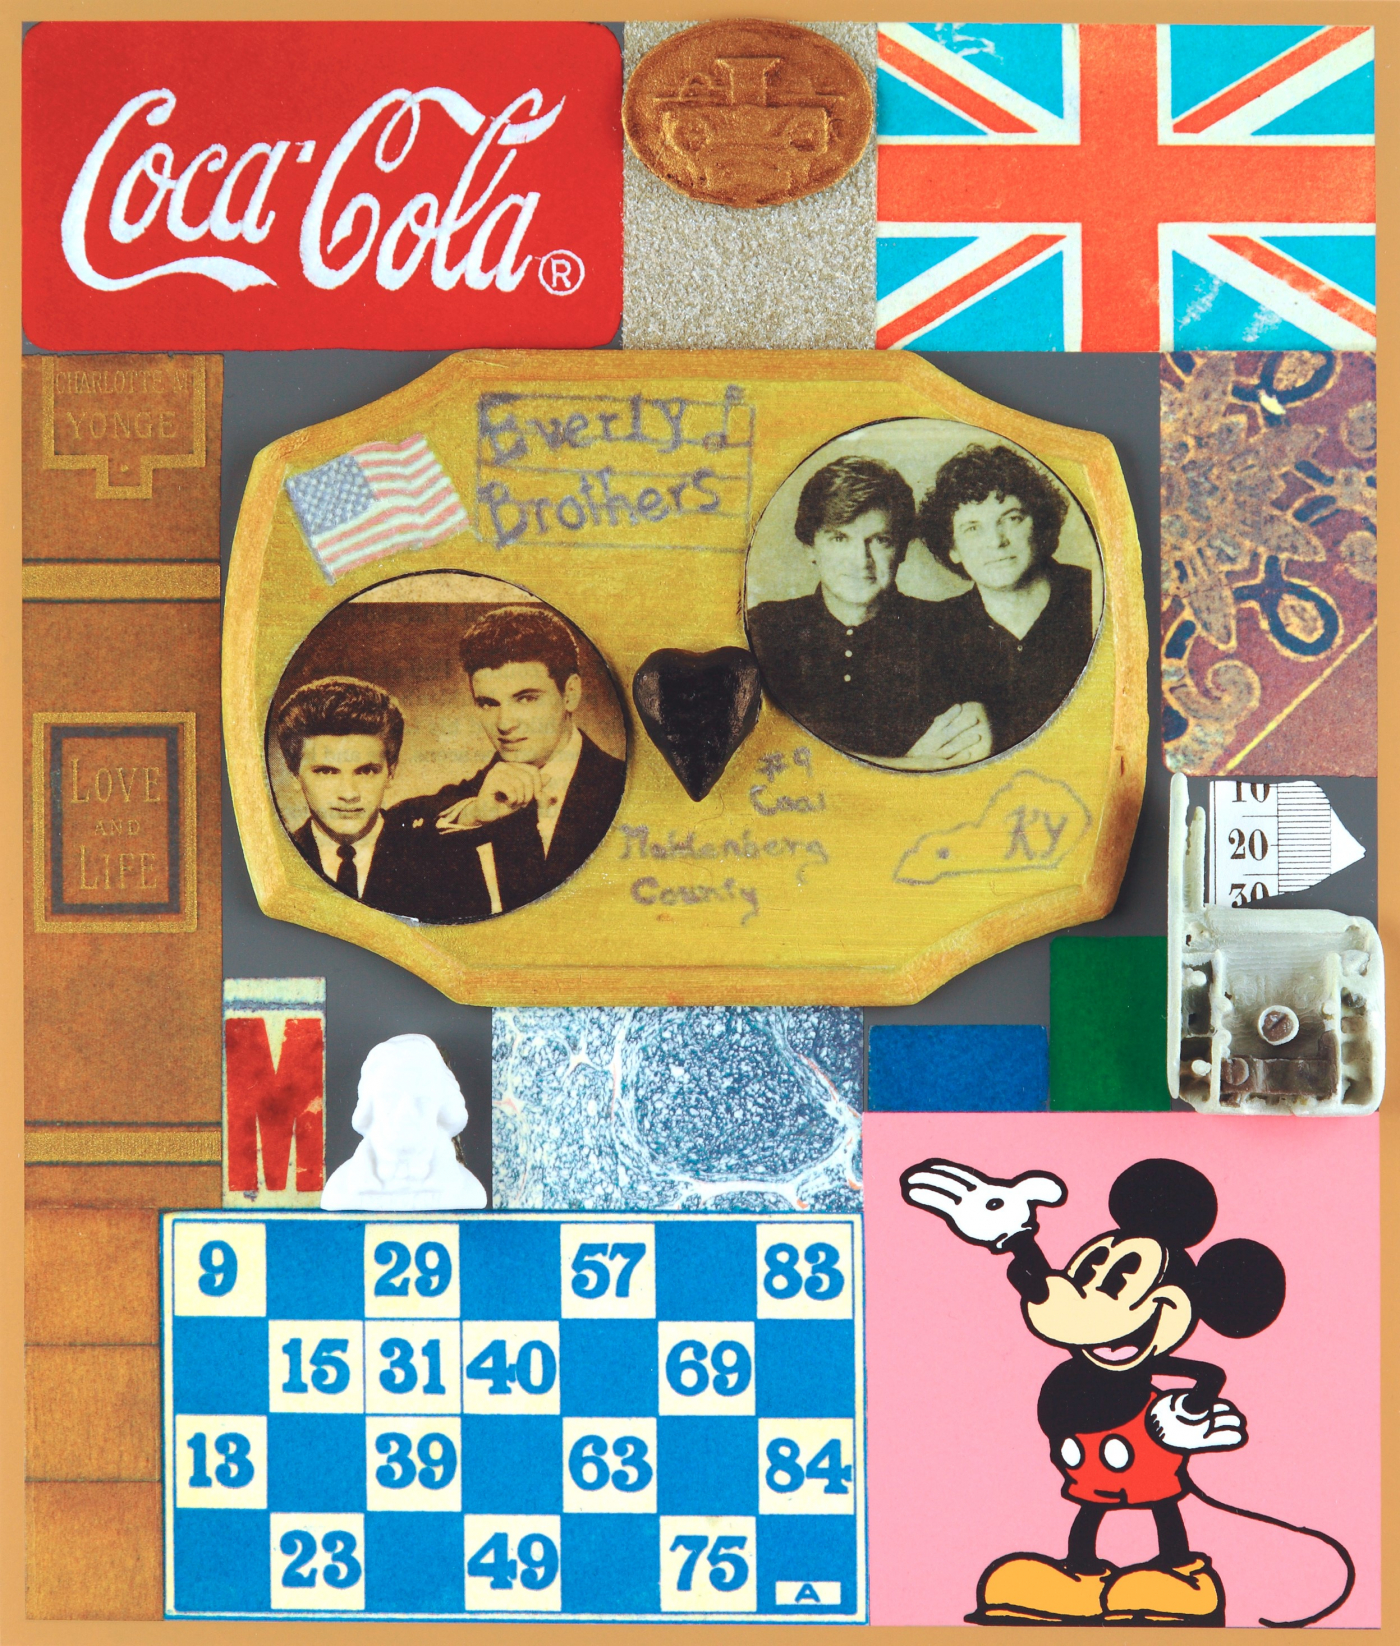 3D Wooden Puzzle Series - Everly Brothers